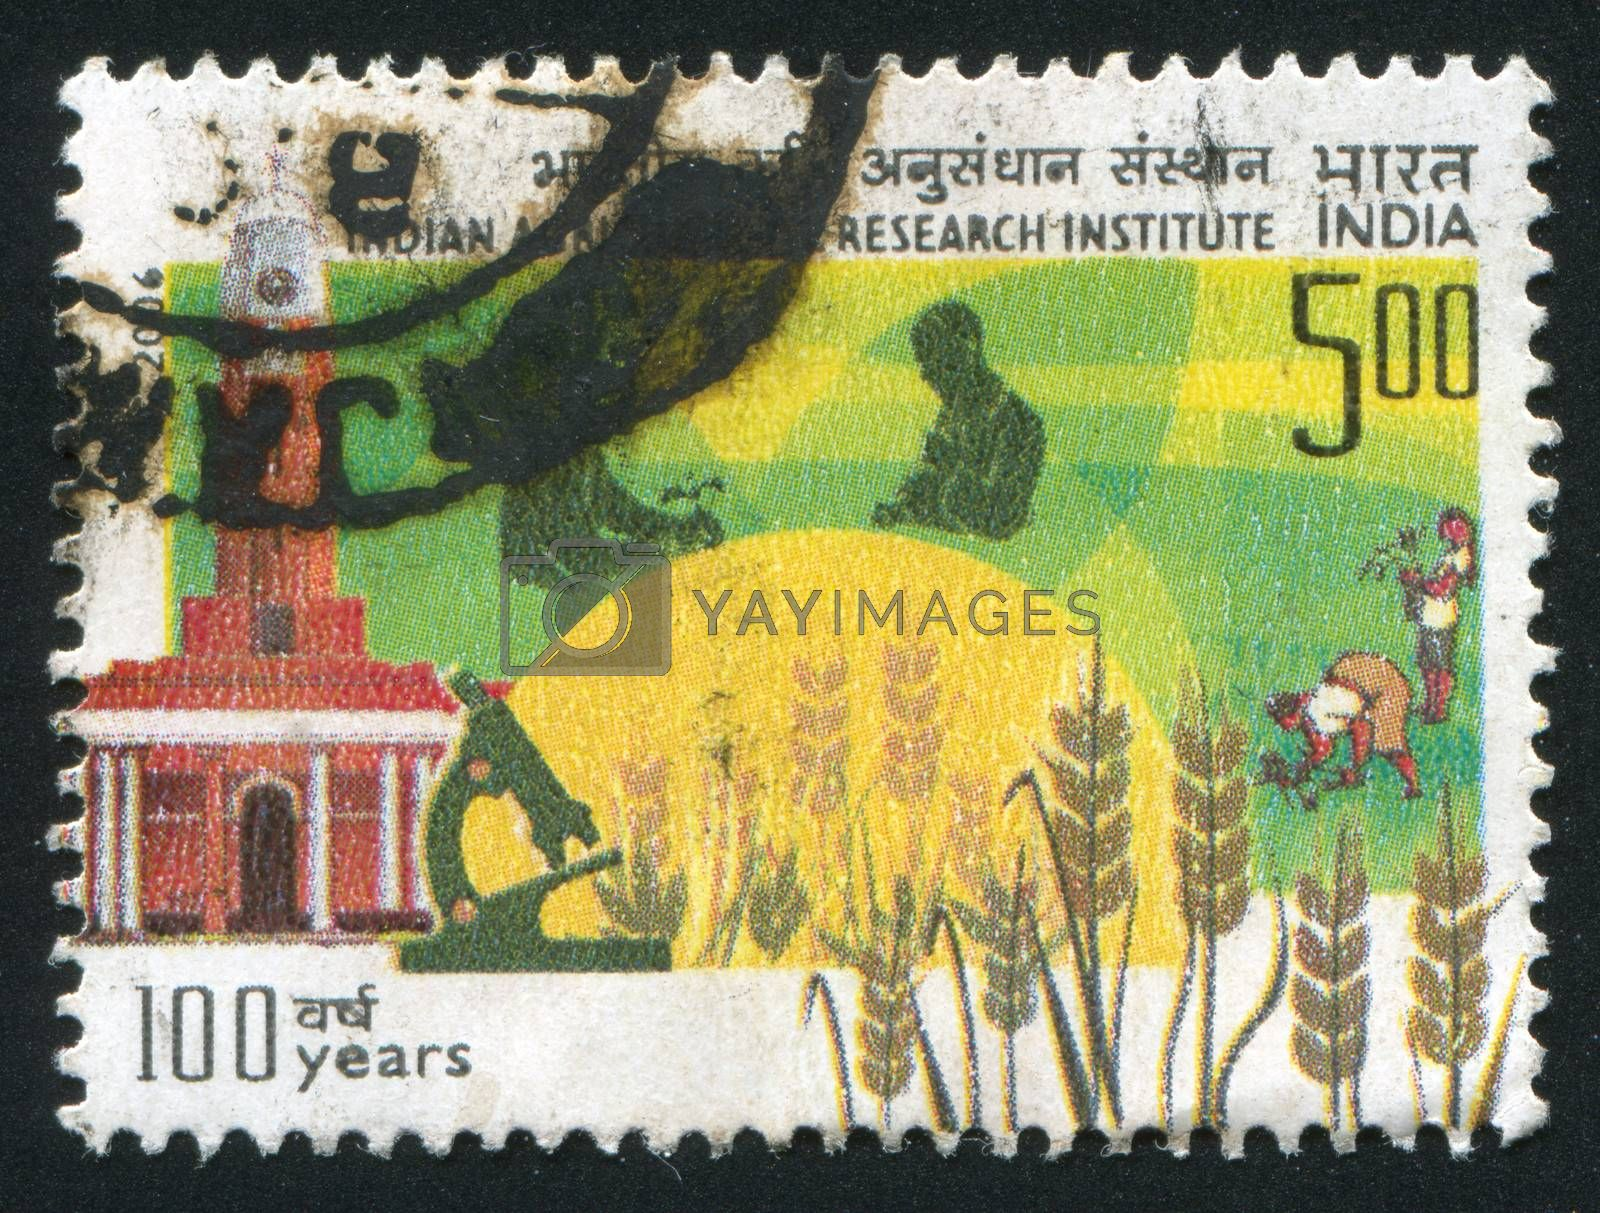 INDIA - CIRCA 2006: stamp printed by India, shows crop, microscope, people, building, circa 2006